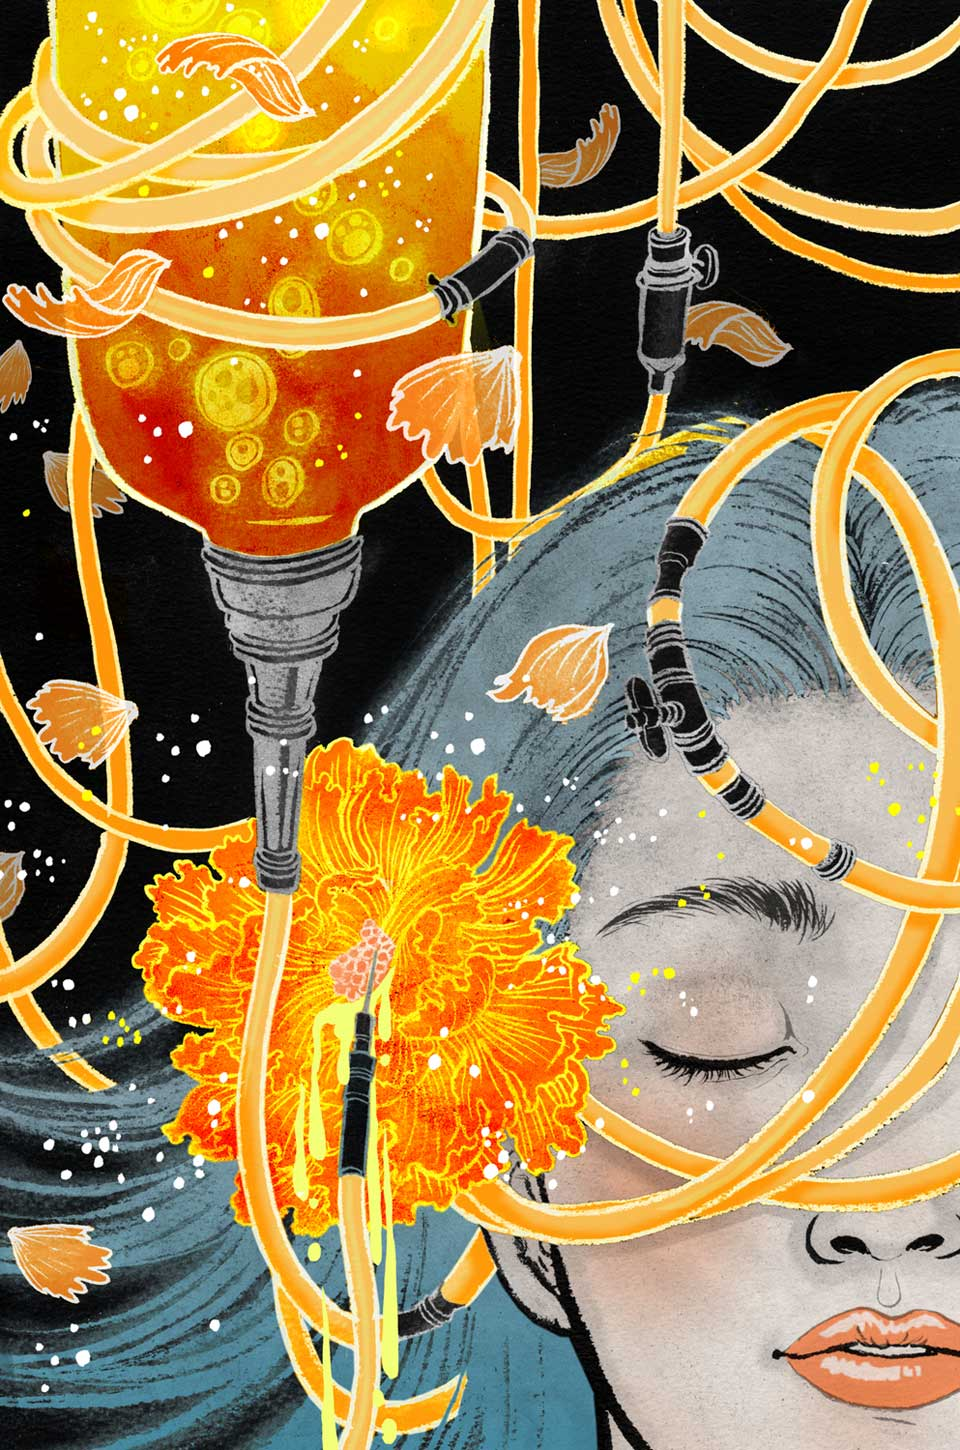 New Works by Yuko Shimizu: yuko_shimizu_two_1_20121027_2087613002.jpeg